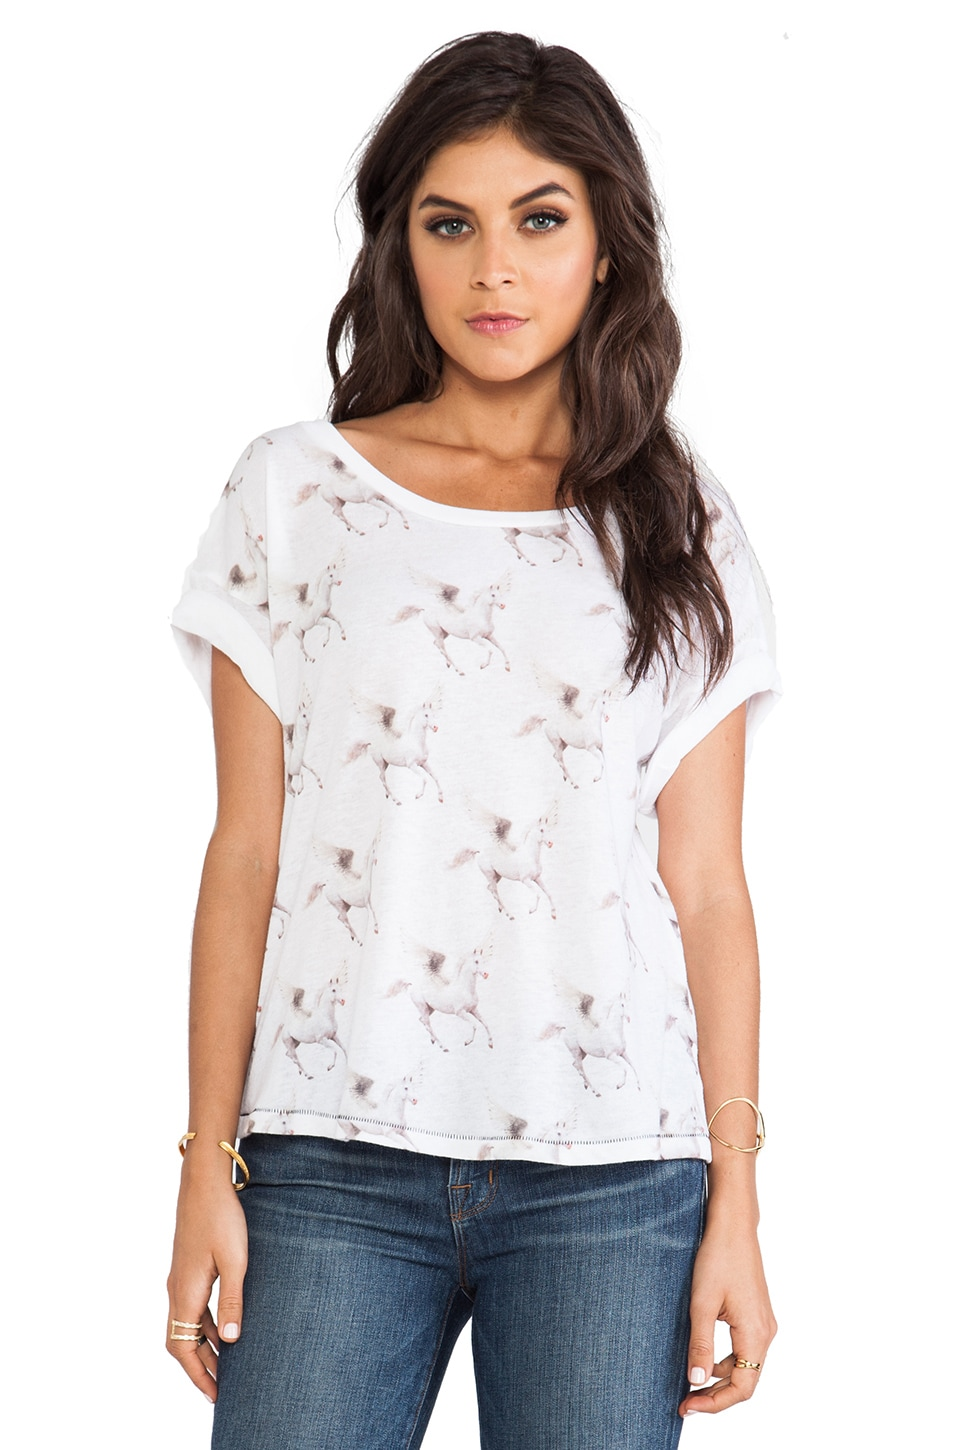 All Things Fabulous Pegasus Tee in White